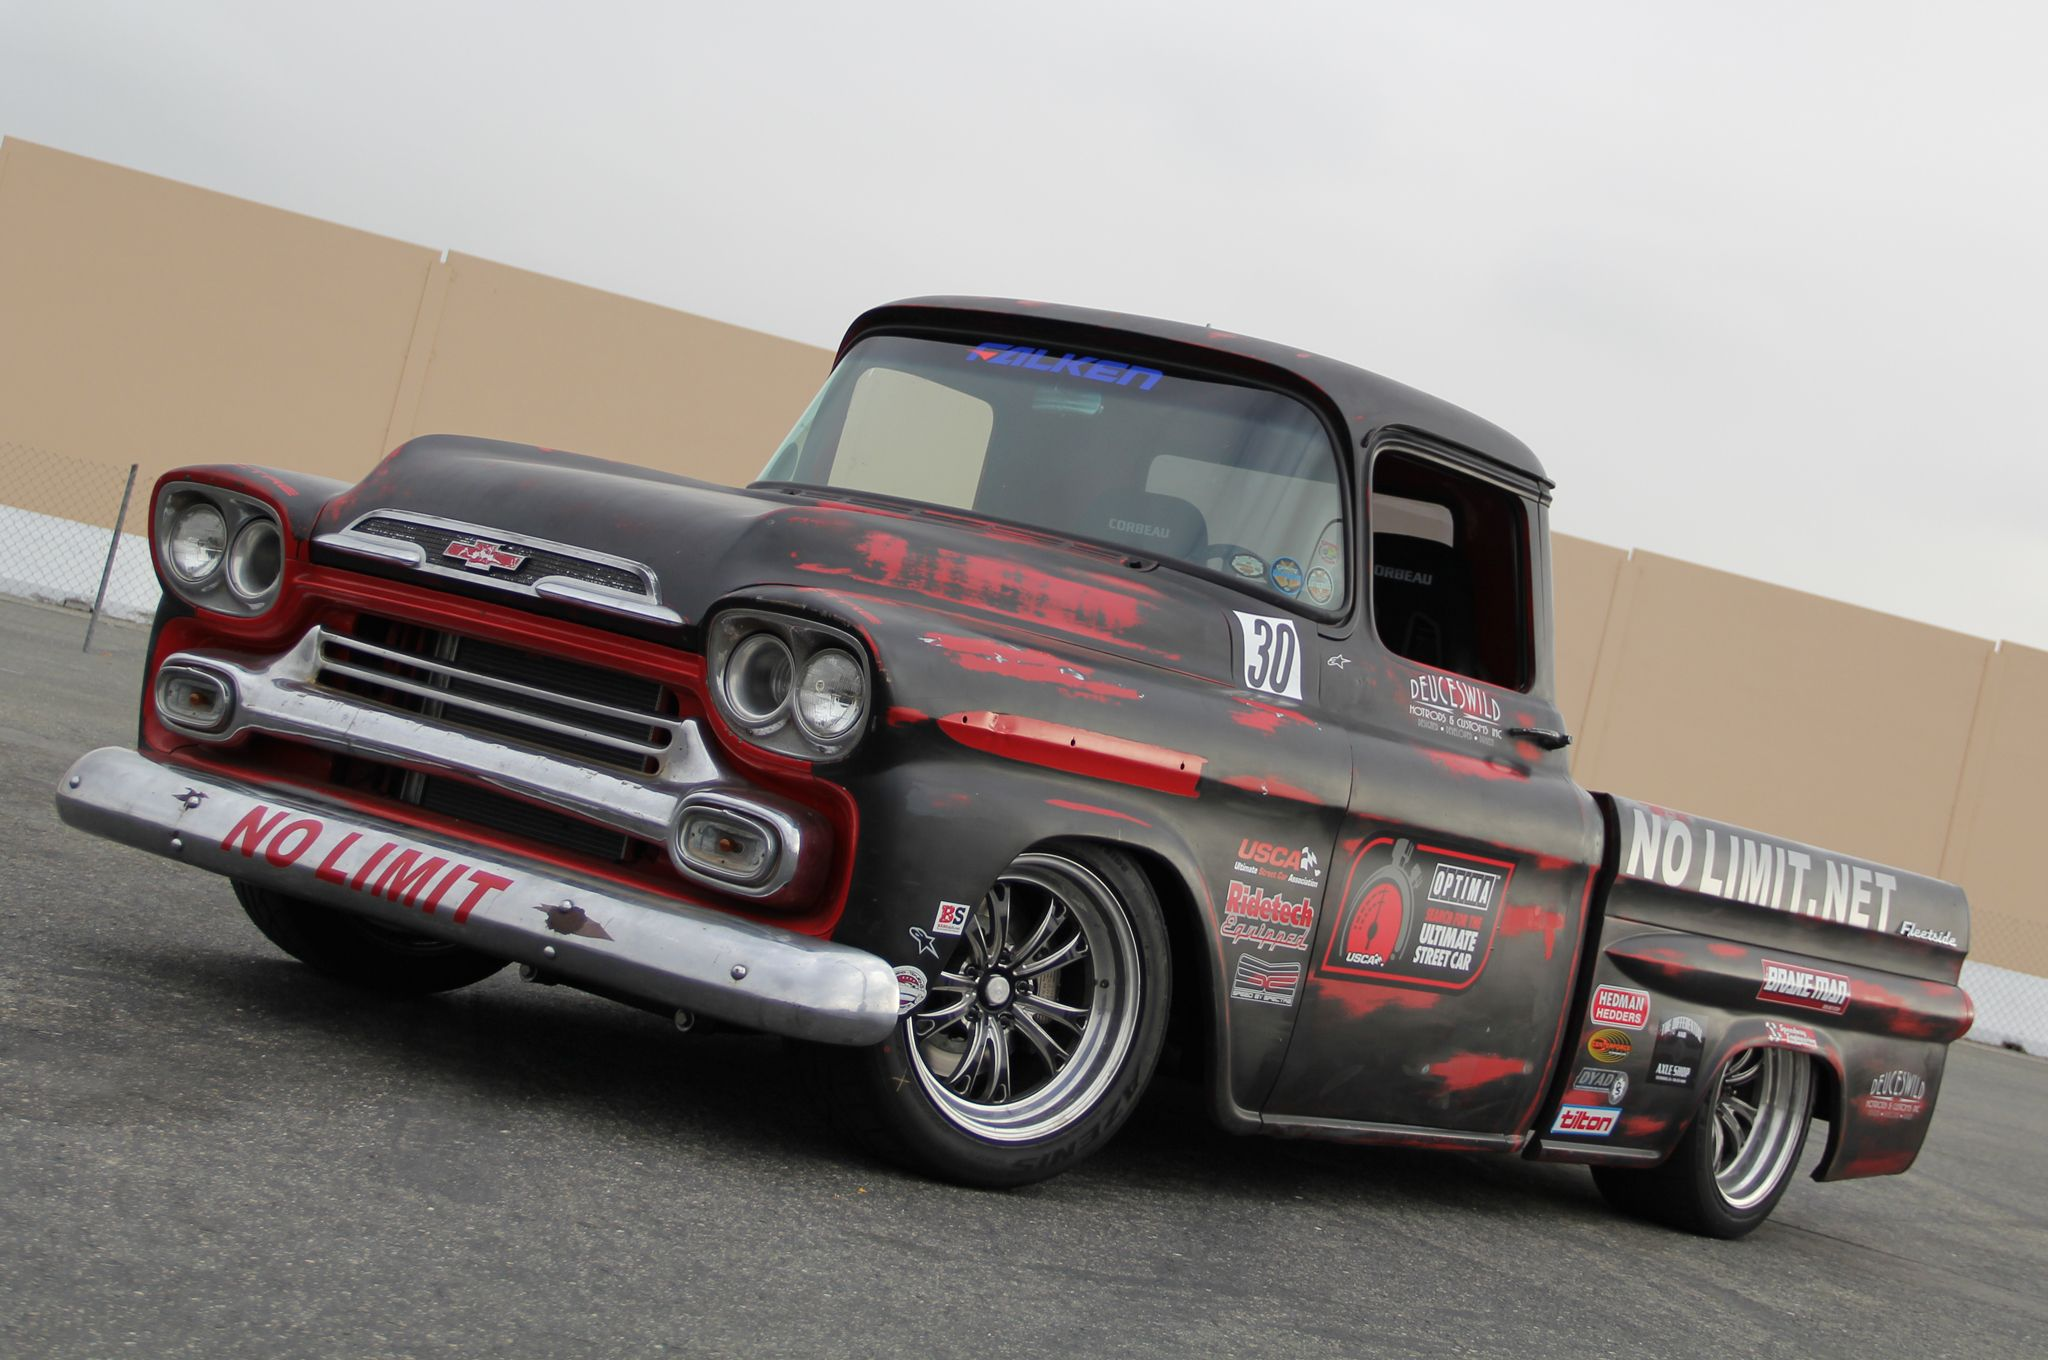 1959 Chevrolet Apache Backgrounds on Wallpapers Vista